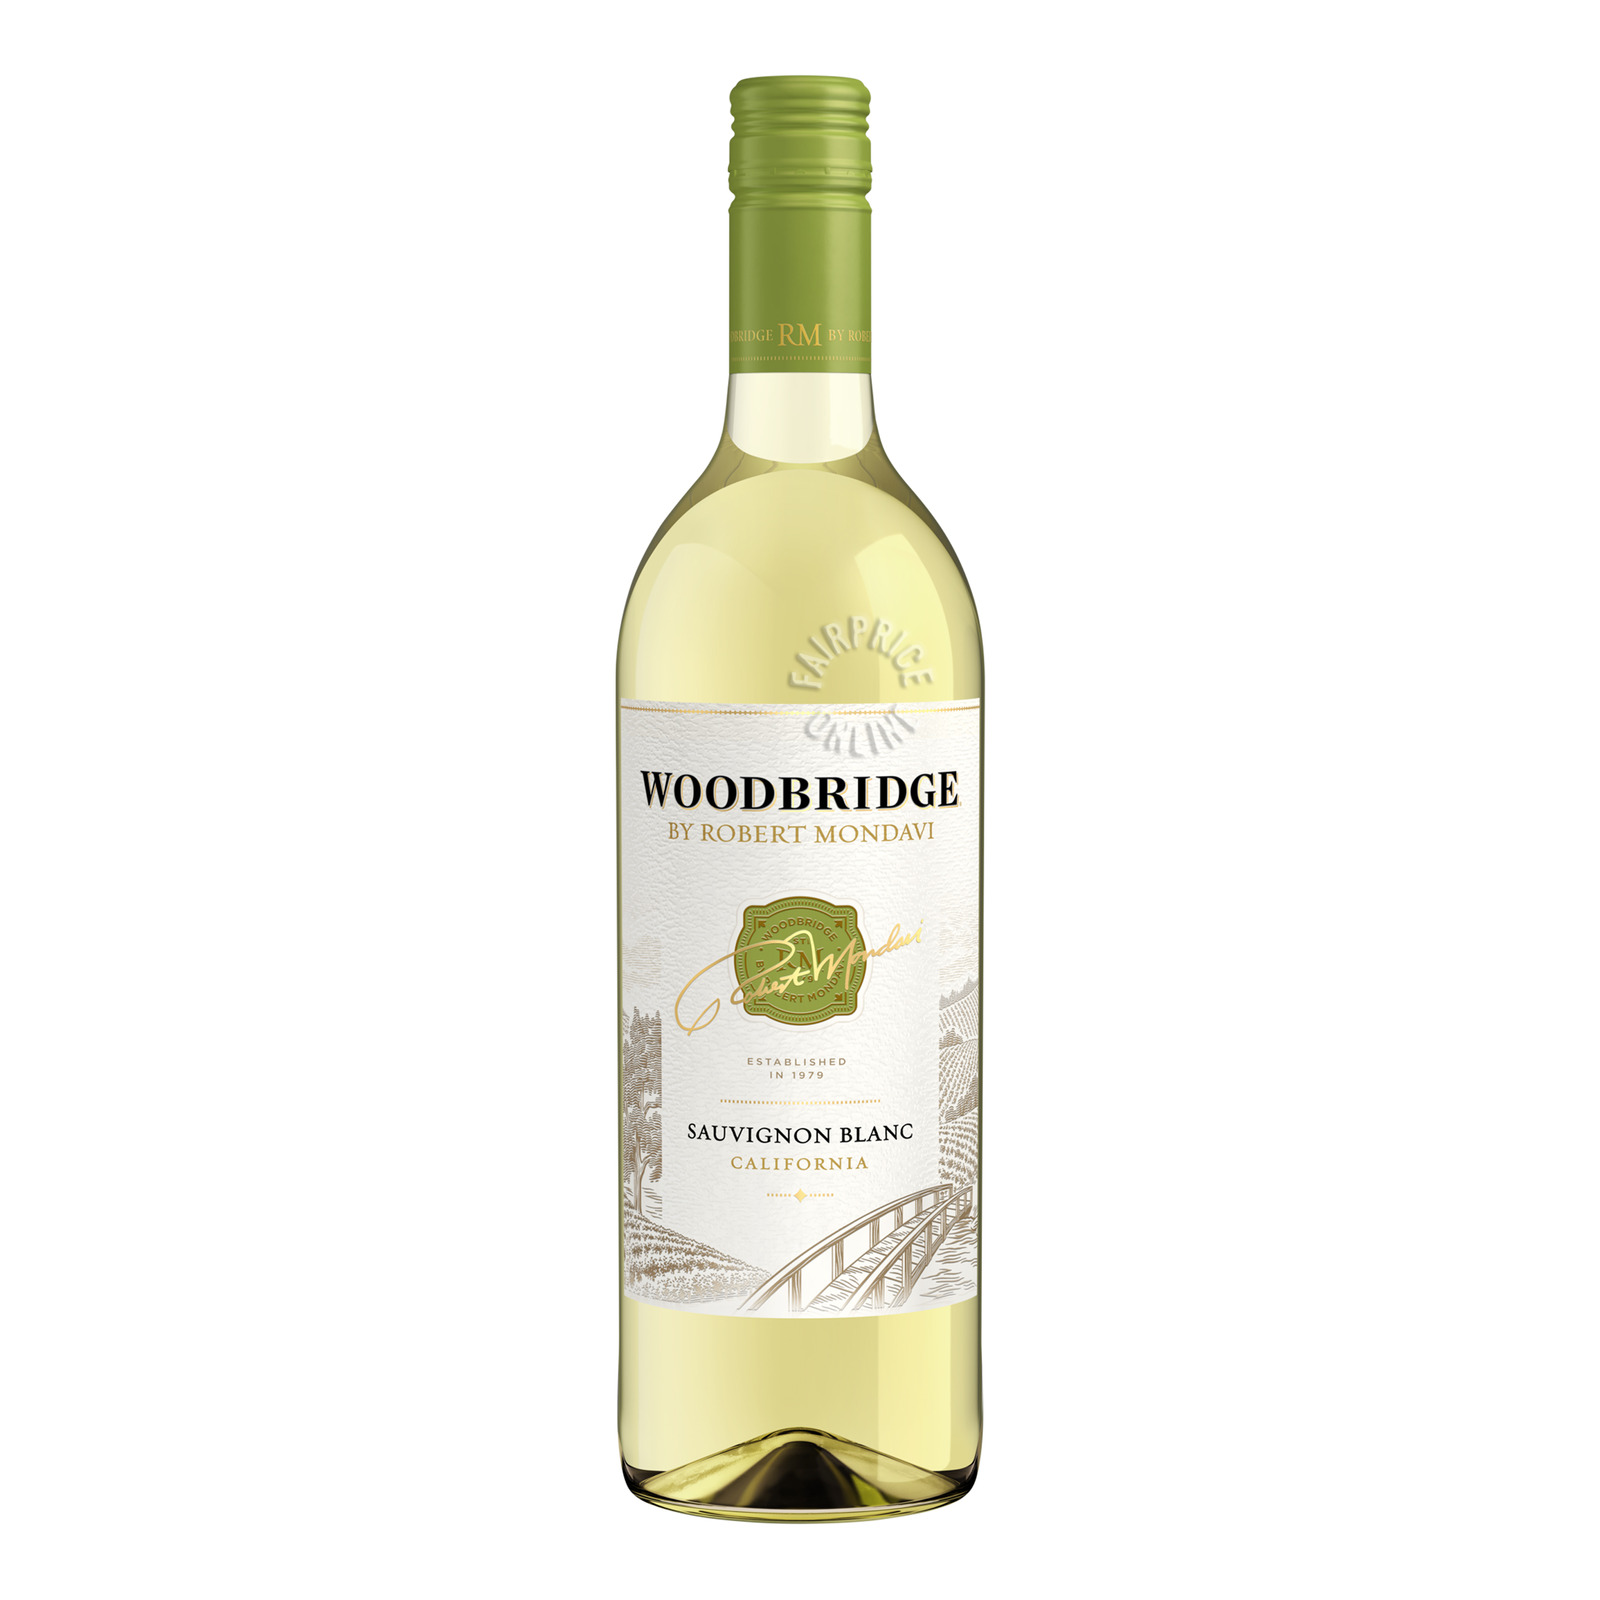 Robert Mondavi Woodbridge White Wine - Sauvignon Blanc